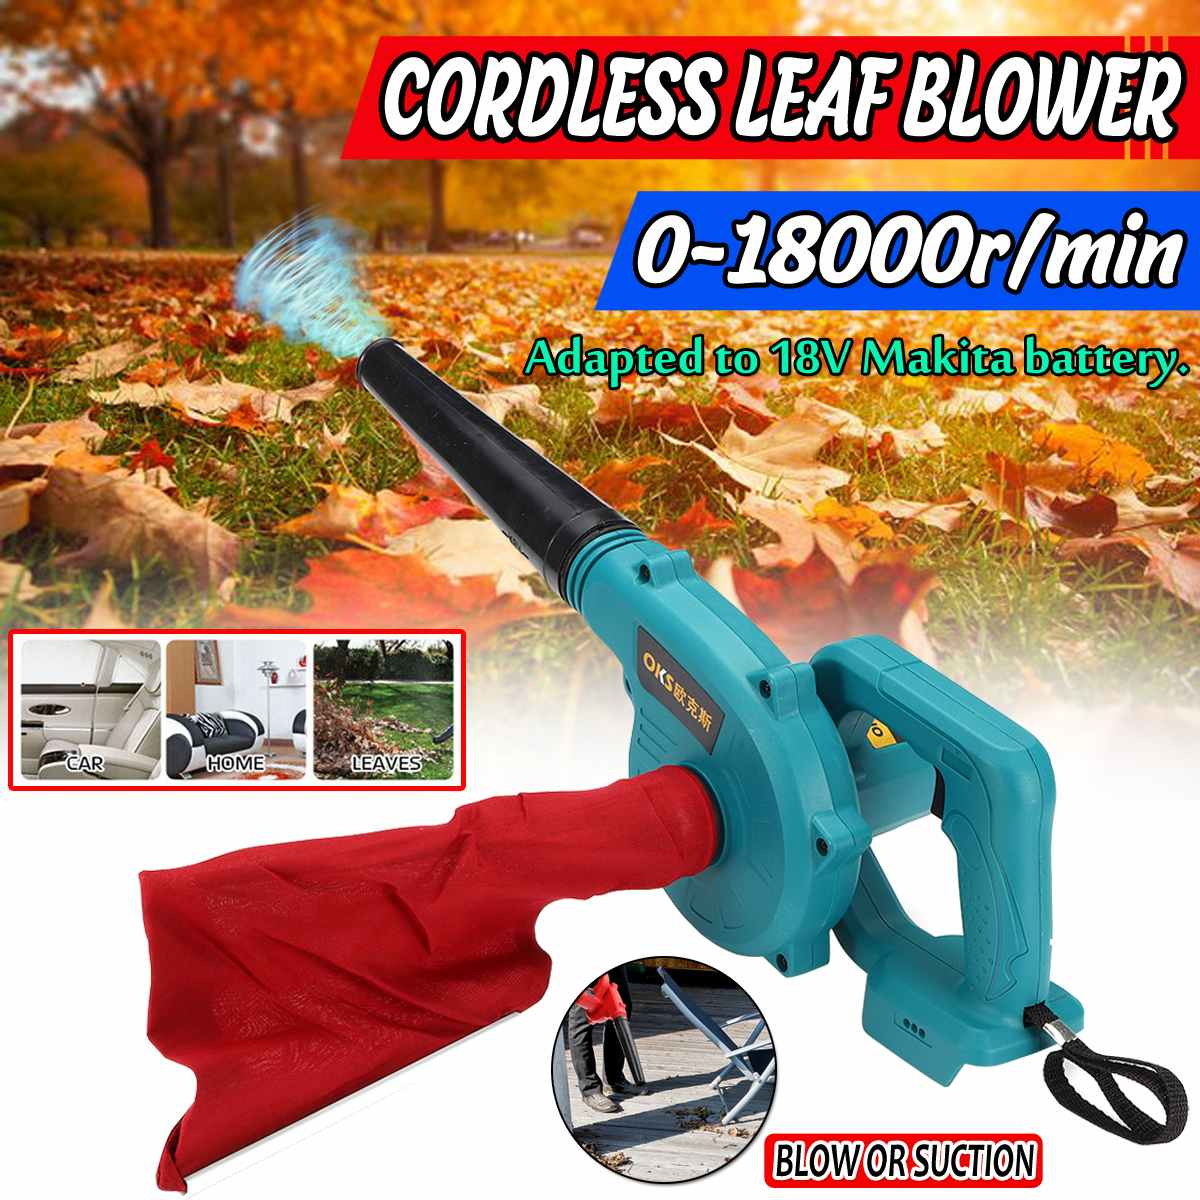 Blower & Suction Cordless Electric Air Blower Handheld Leaf Computer Dust Collector Cleaner Tool For Makita 18V Li-ion Battery